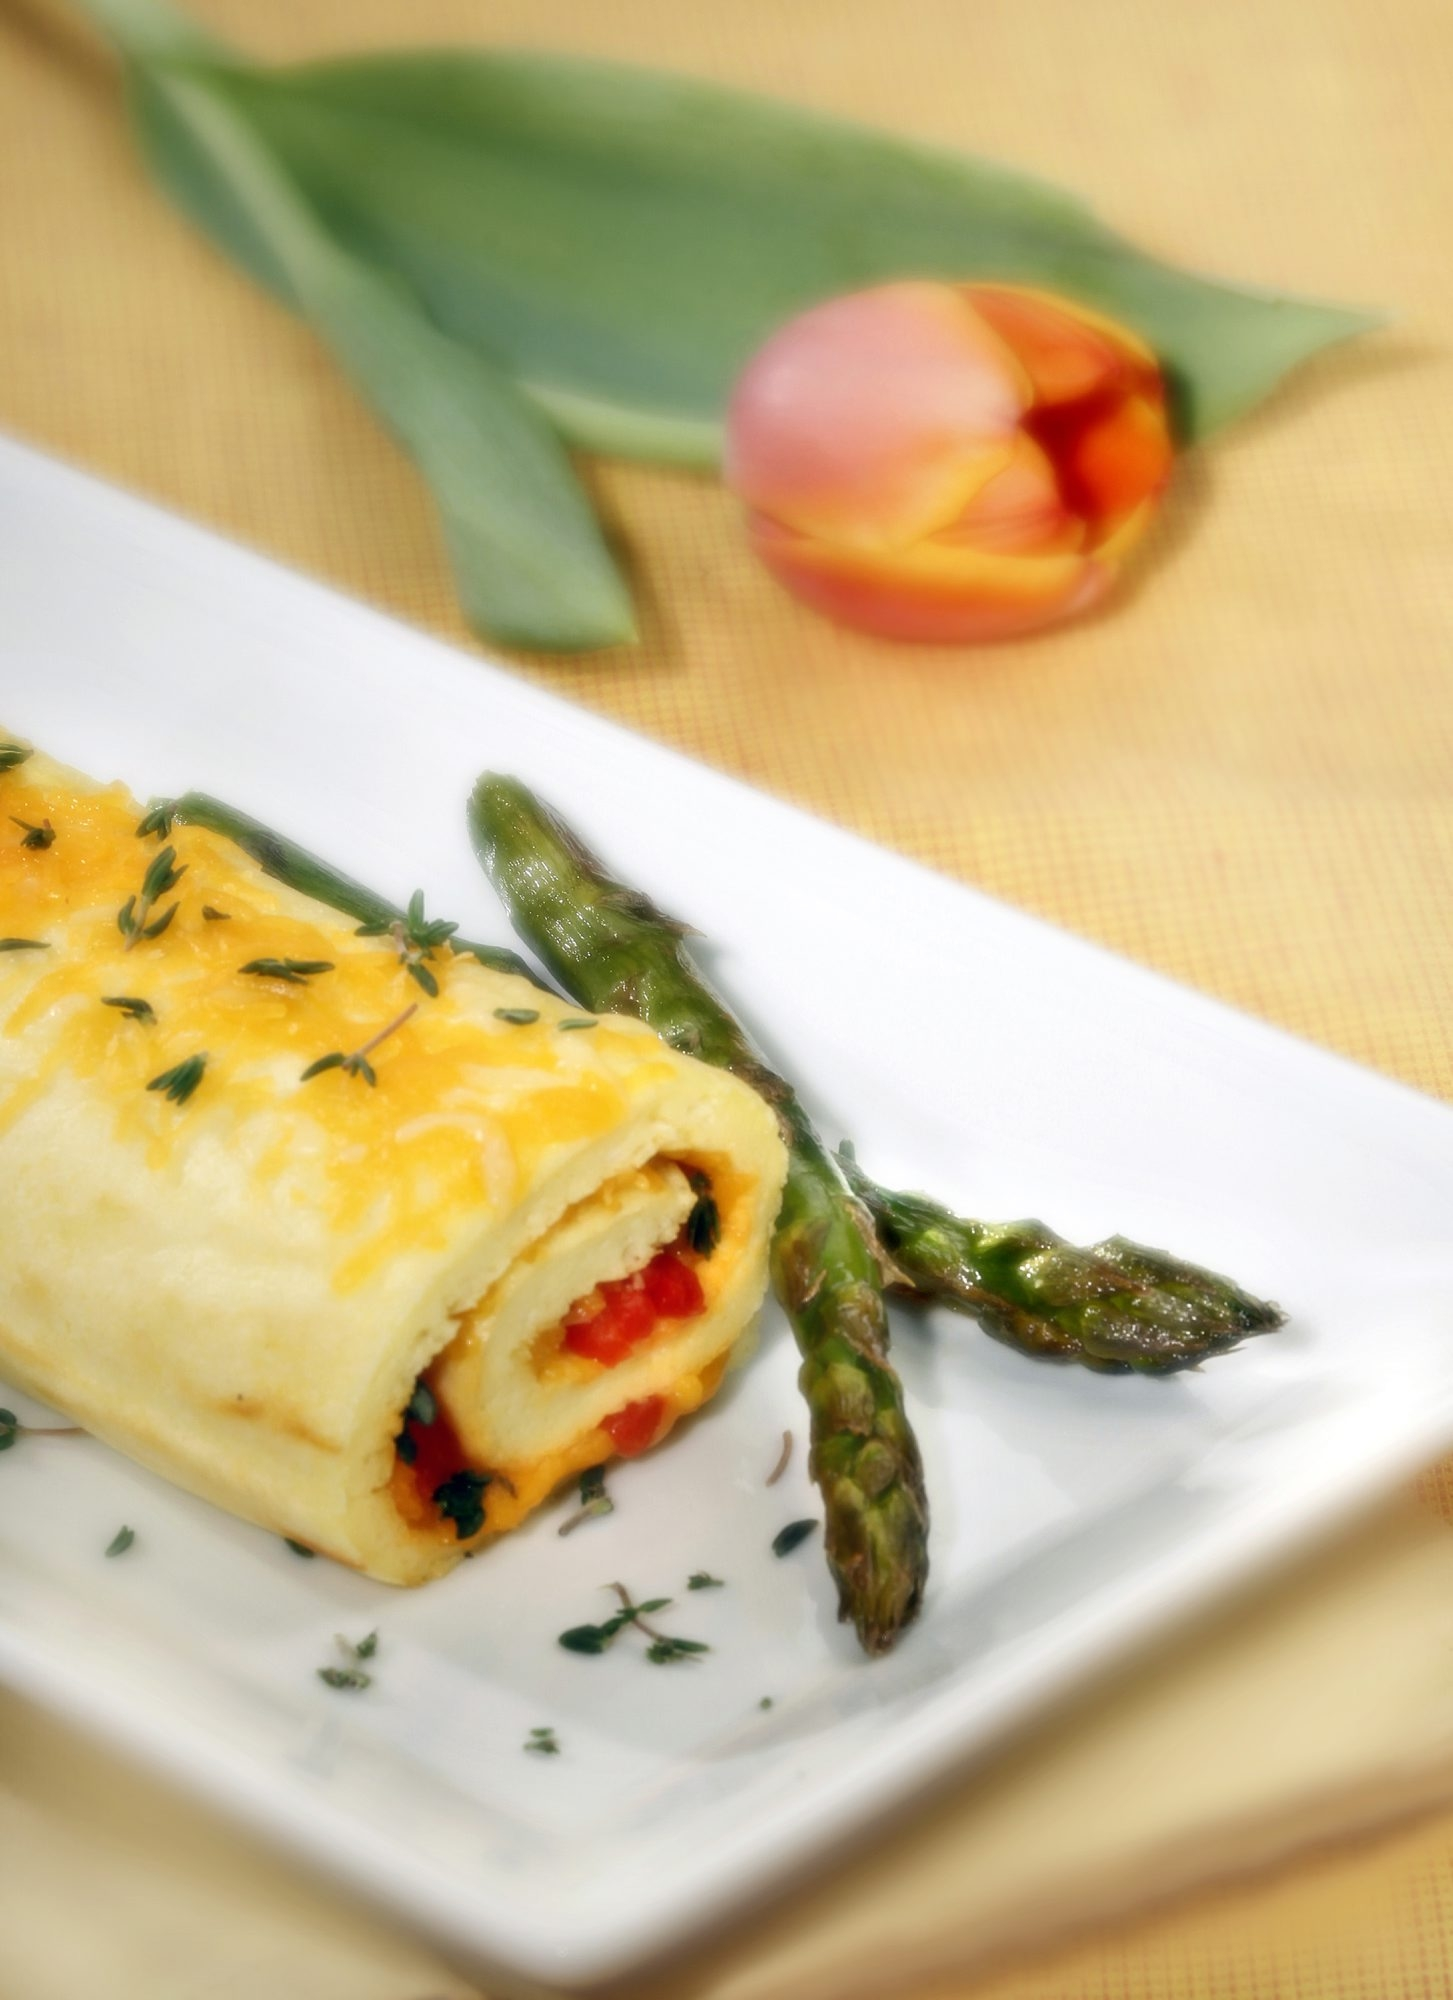 Spring brings new ingredients to the table bursting with flavor and bright colors, including a roulade that can be filled with almost anything a cook can imagine, as well as fresh asparagus.